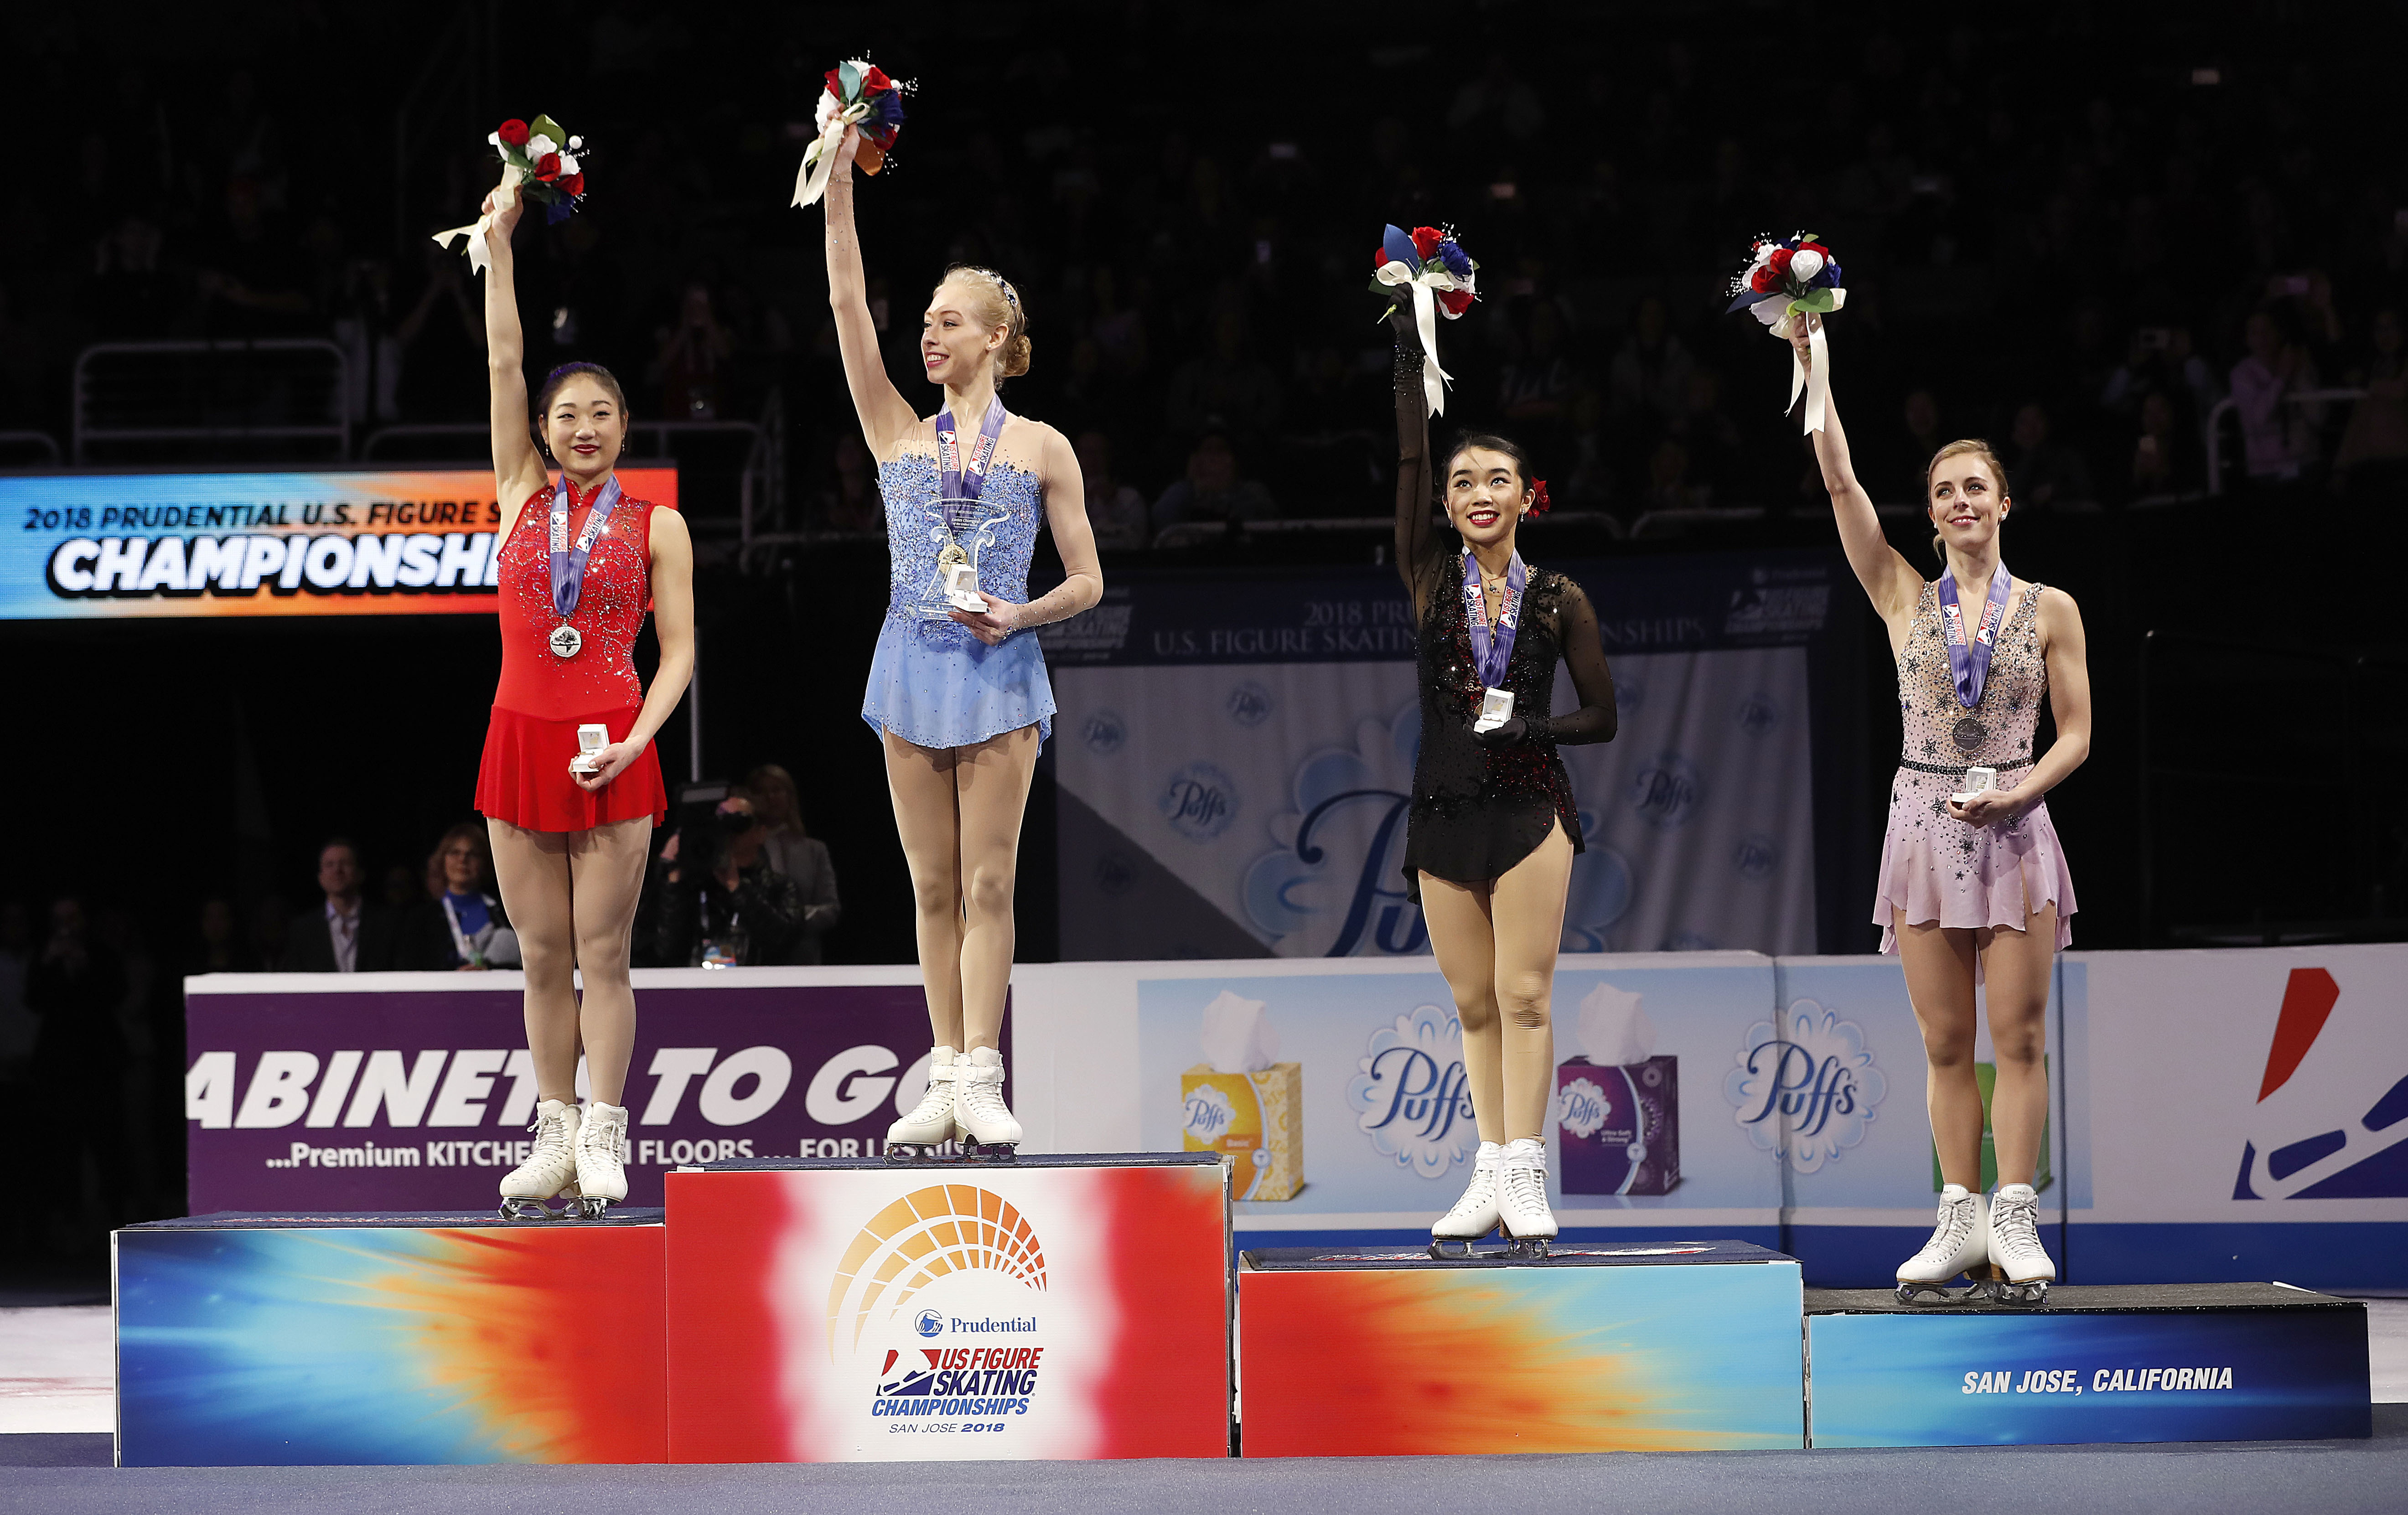 Bradie Tennell, second from left, poses after winning the women's free skate event with second place finisher Mirai Nagasu, left, third place finisher Karen Chen, second from right, and fourth place finisher Ashley Wagner at the U.S. Figure Skating Championships in San Jose, Calif., Friday, Jan. 5, 2018. (AP Photo/Tony Avelar)